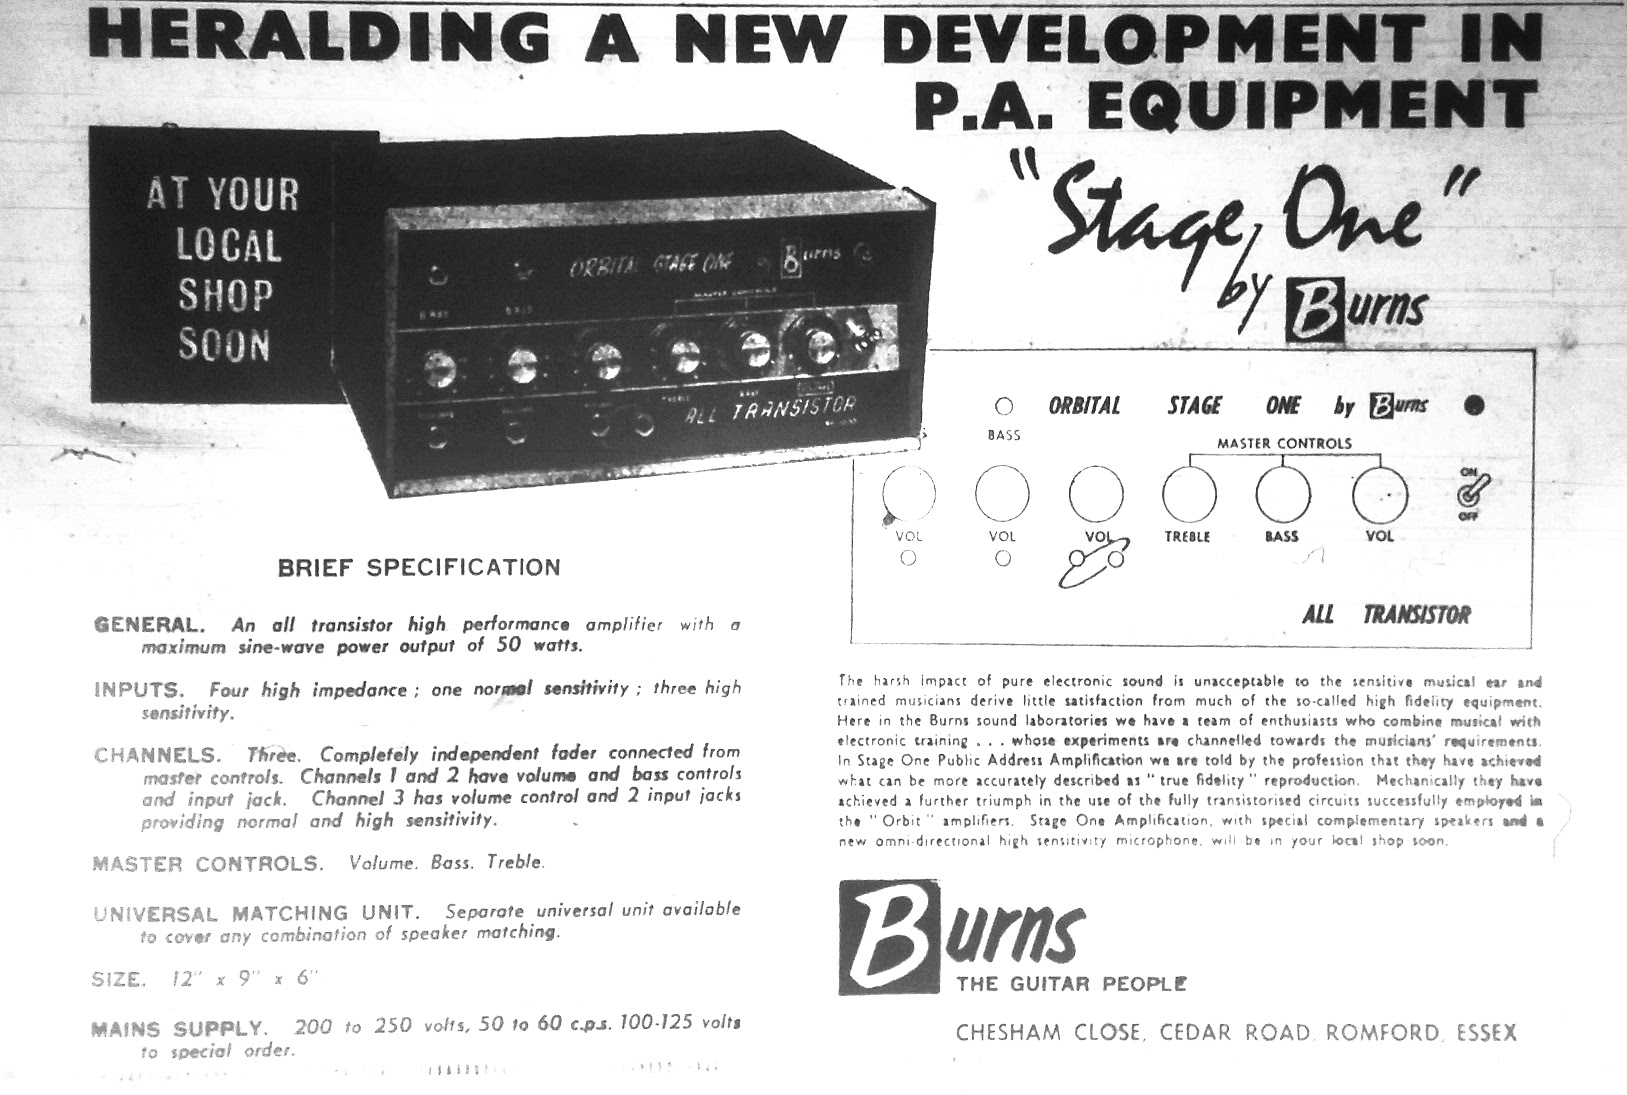 Burns Stage One advert